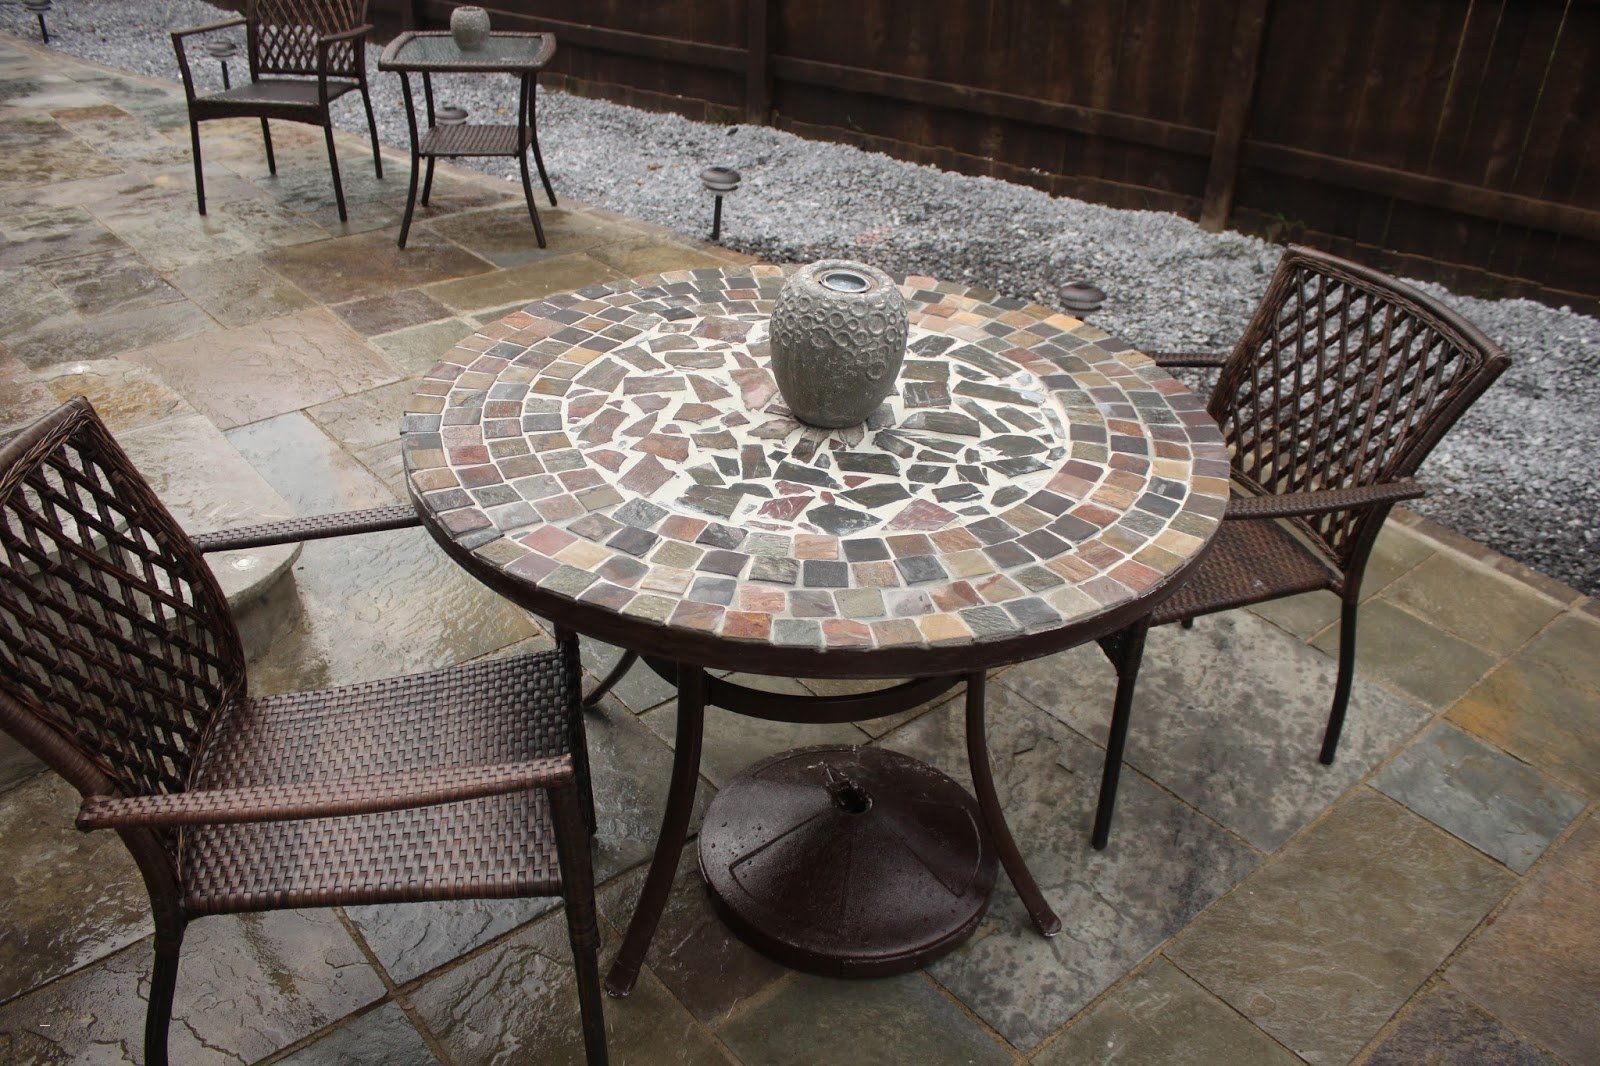 Replacement Ceramic Tiles For Patio Table